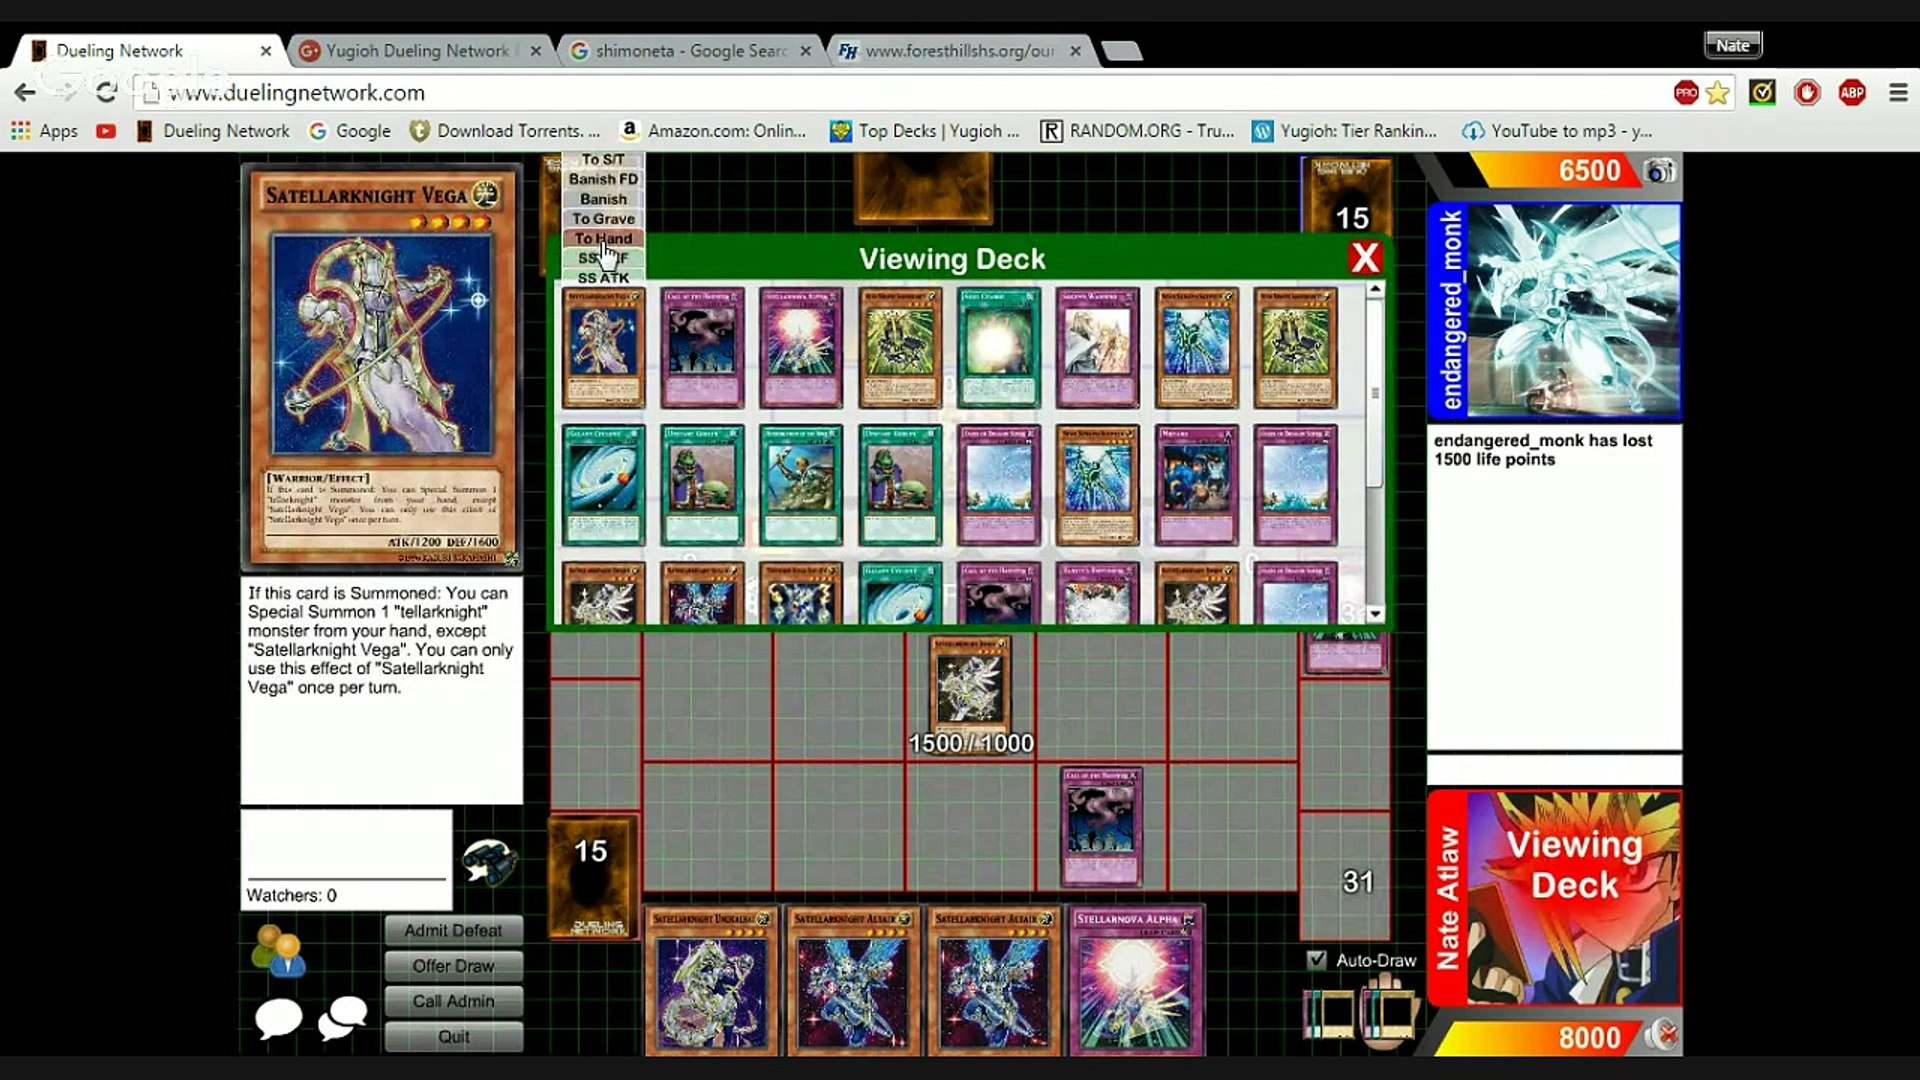 yugioh dueling network road